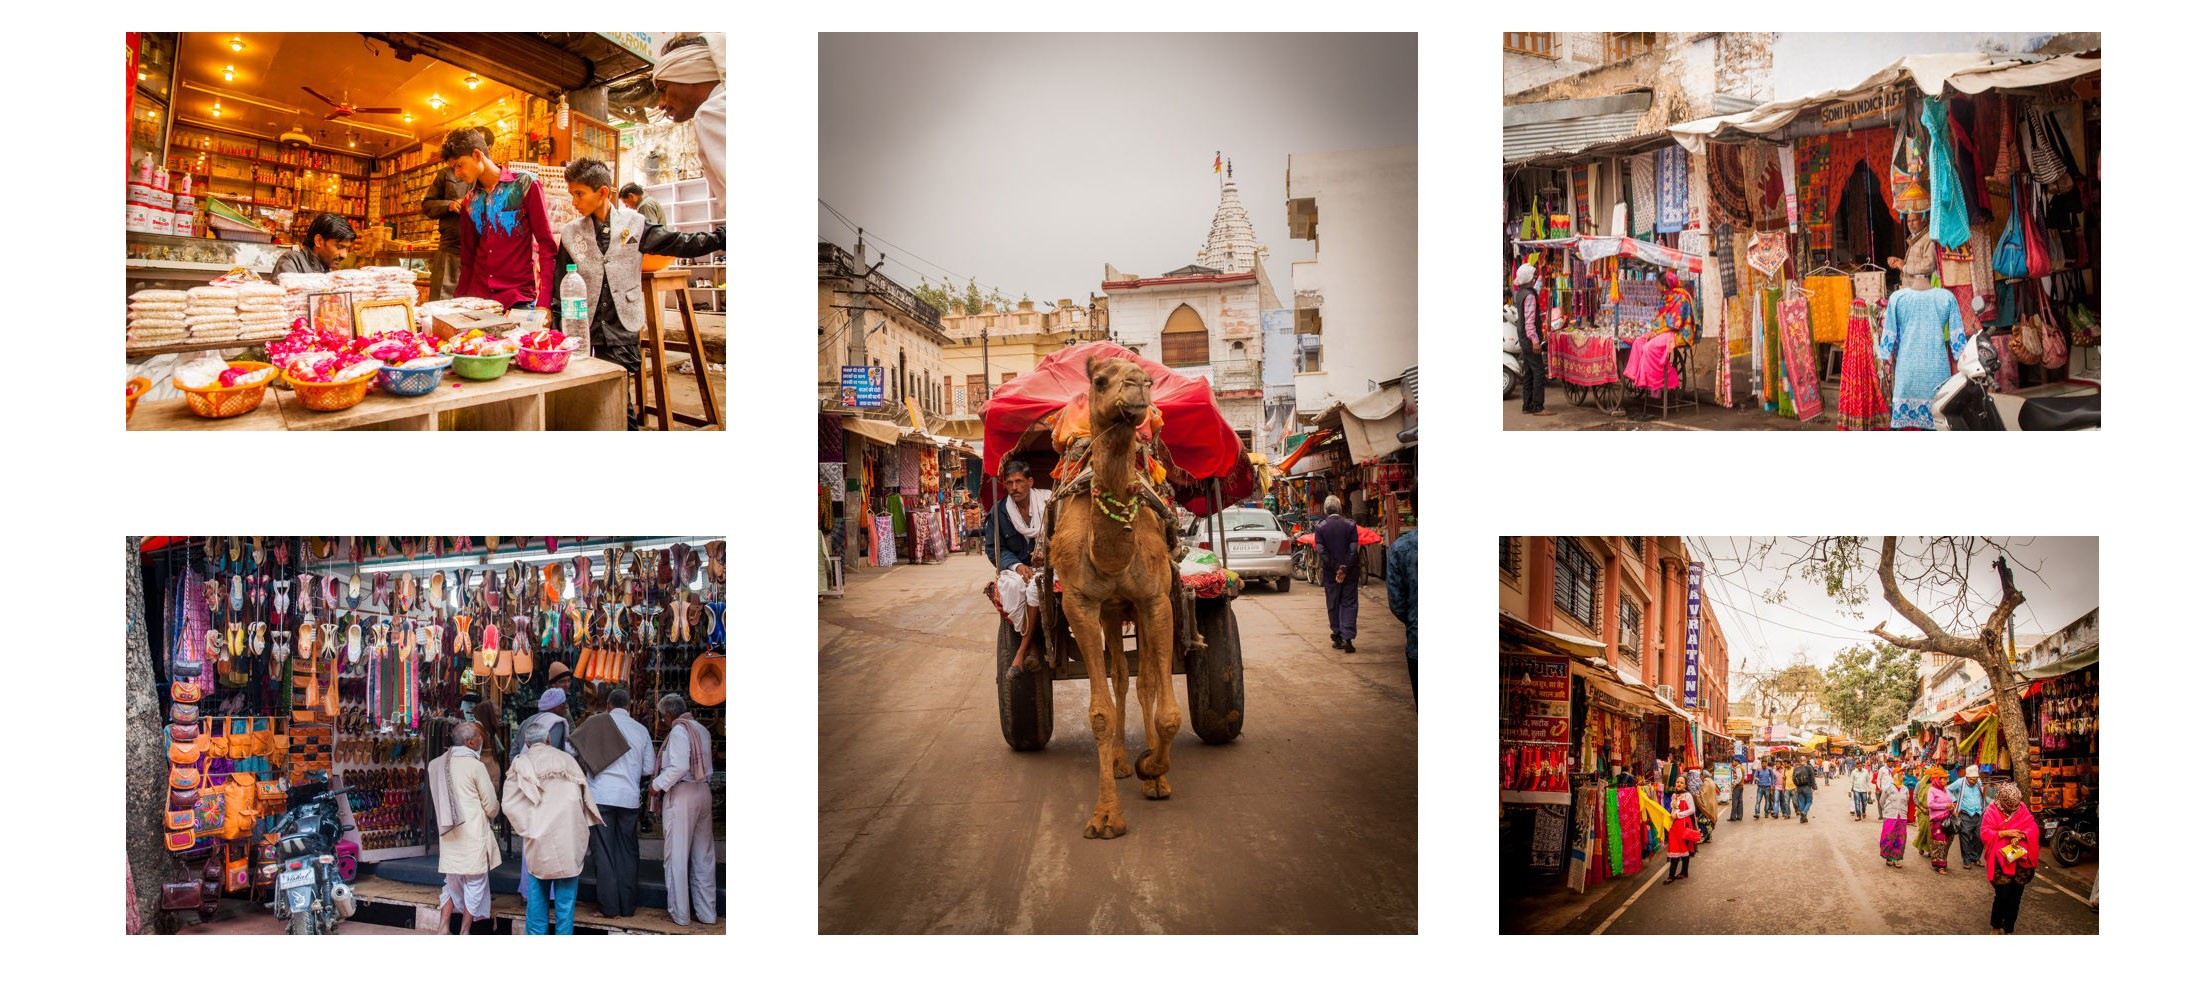 Voyage en Inde à Pushkar, Hippie City